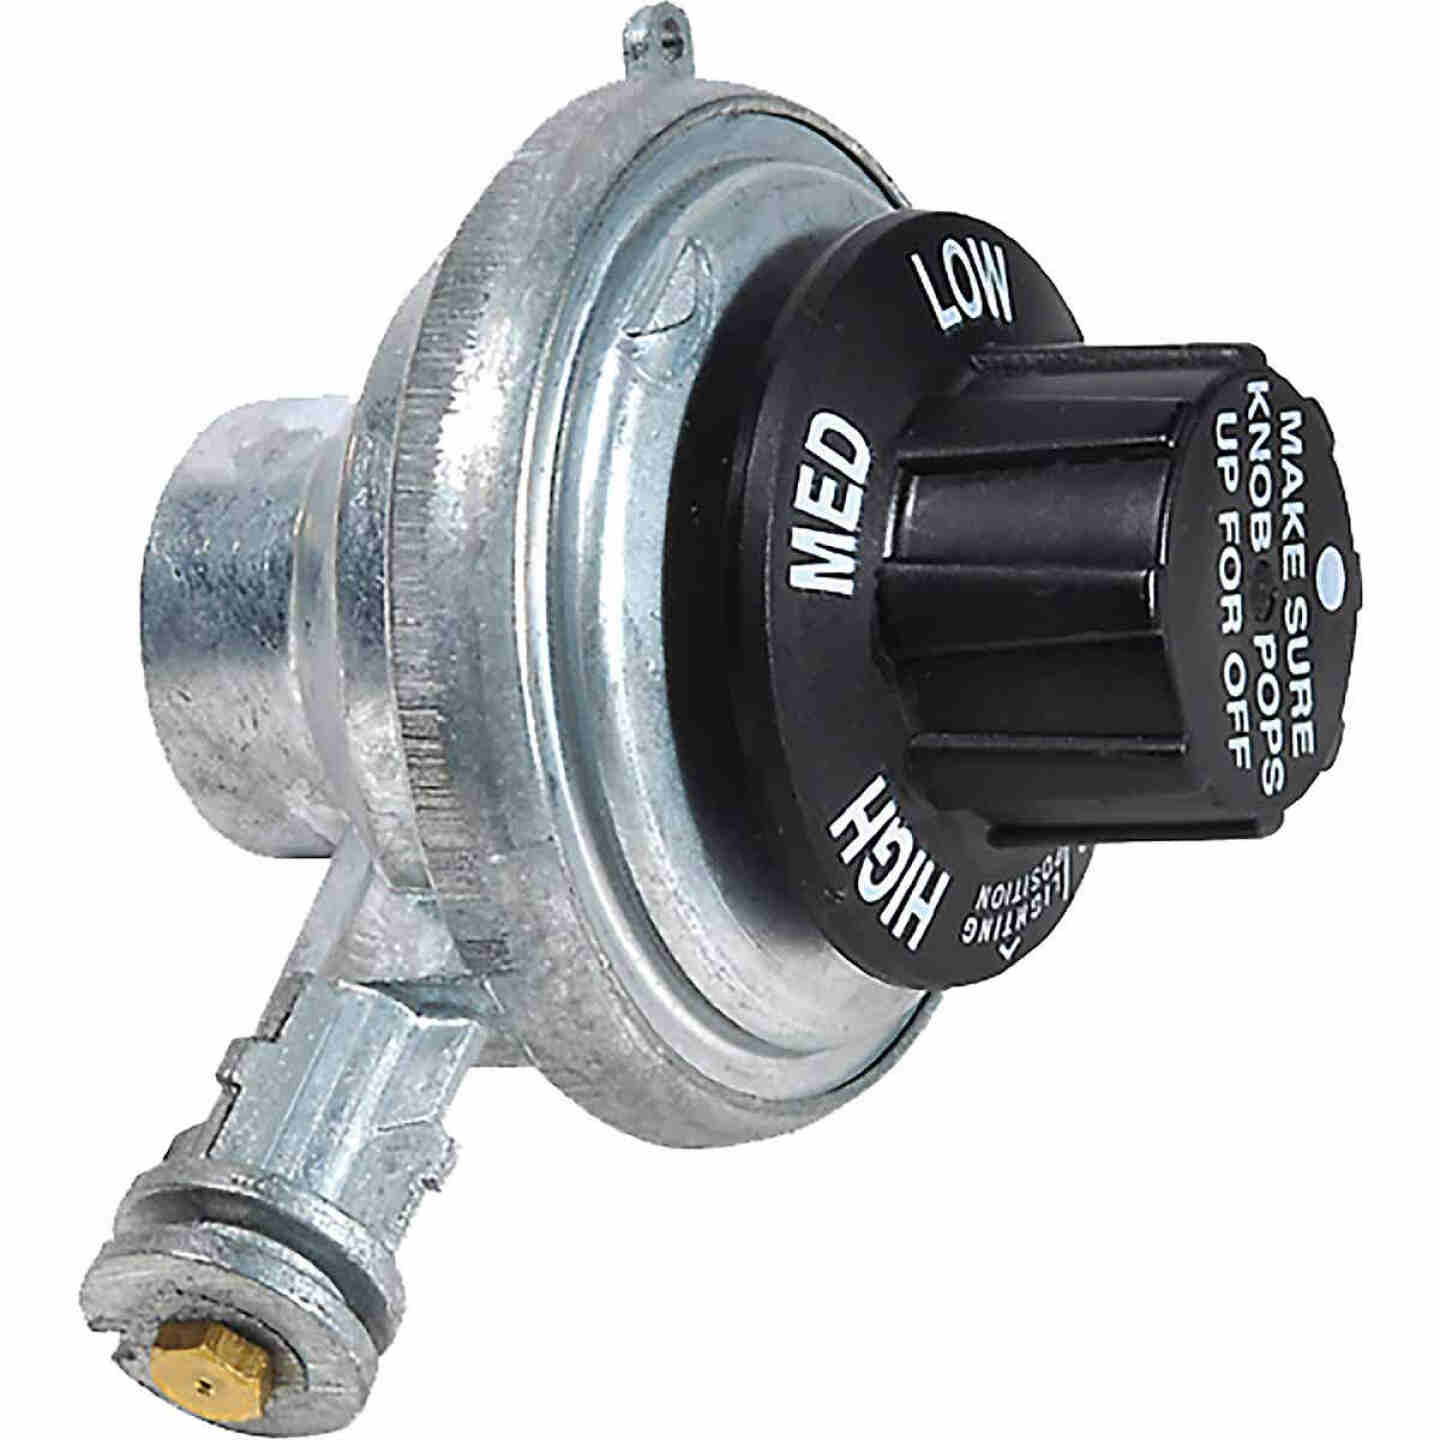 MR. HEATER Steel Portable Tabletop Propane Gas Regulator Image 1